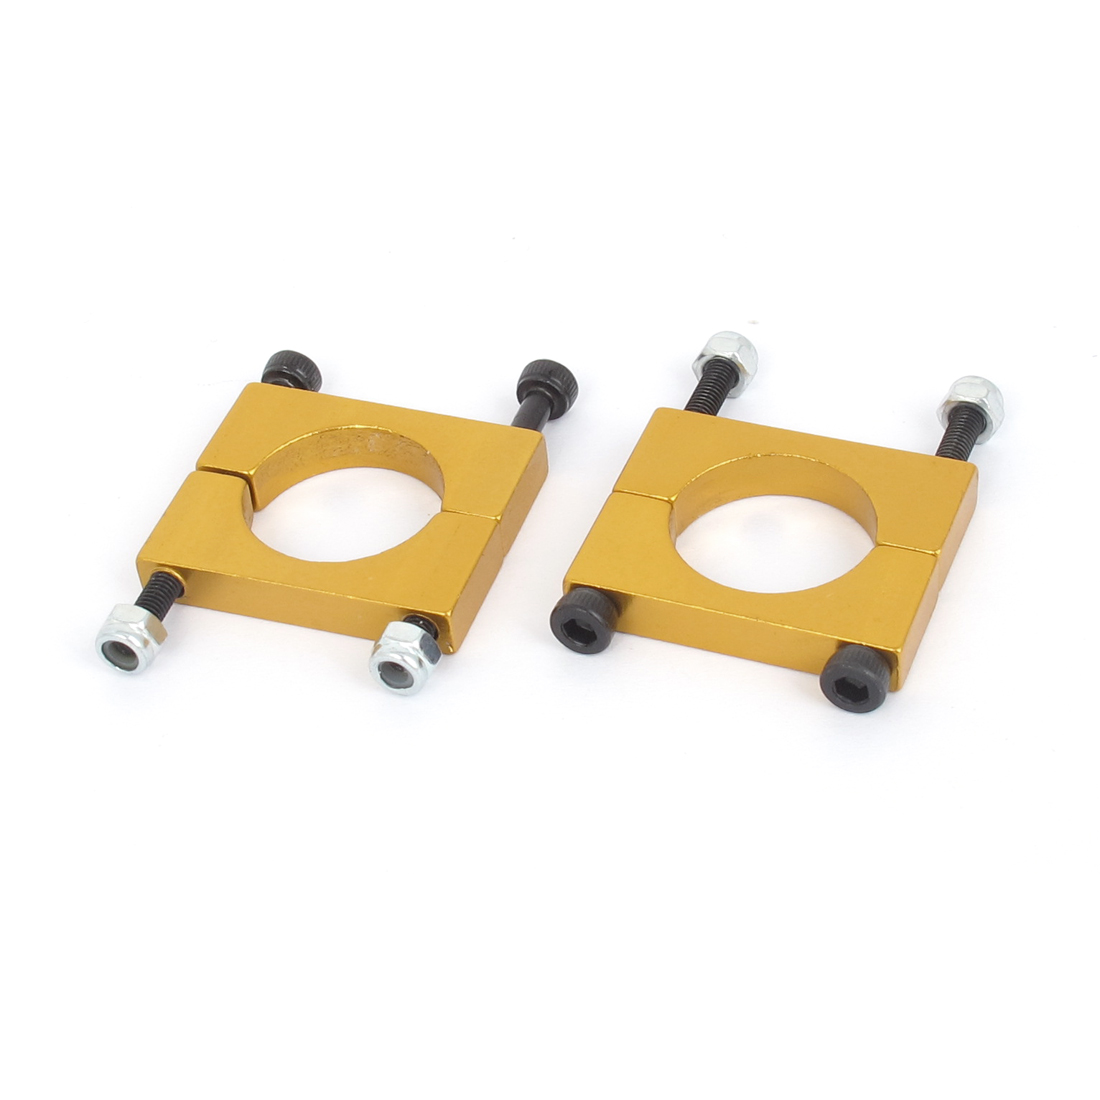 18mm Dia Multicopter Airplane Metal Tube Clip Fixture Clamp Holder Gold Tone 2pcs